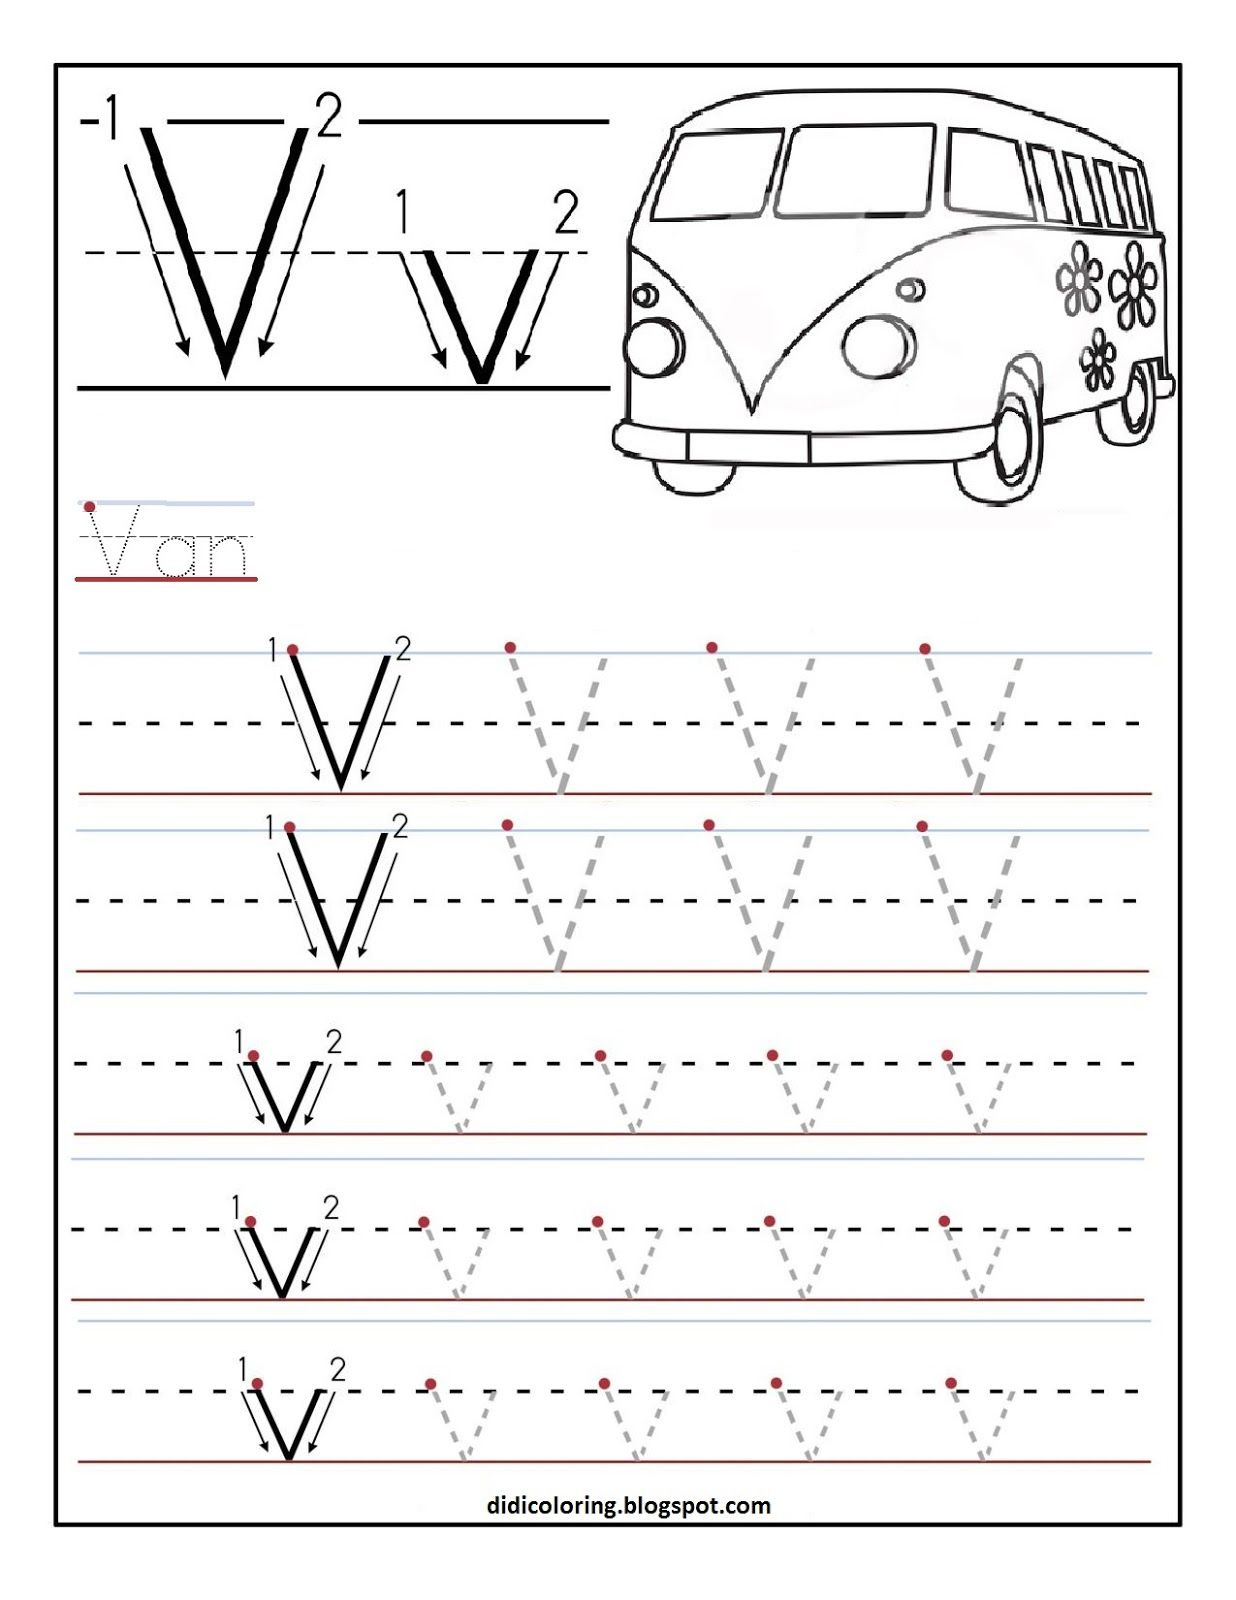 Free Printable Worksheet Letter V For Your Child To Learn throughout Letter V Tracing Worksheets For Preschool